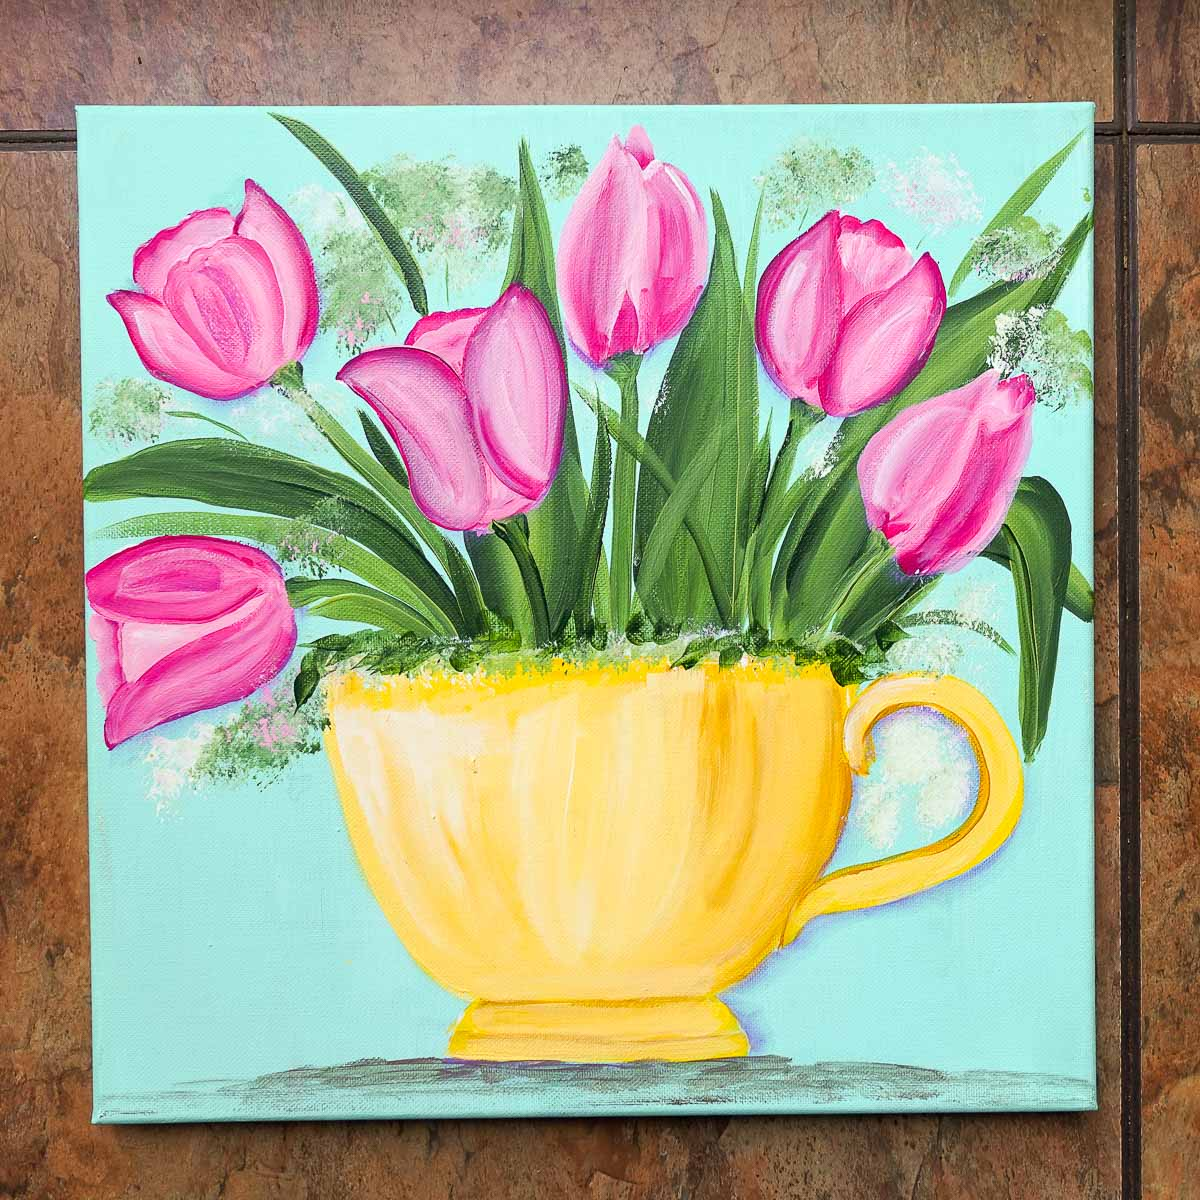 Paint Tulips in a Teacup